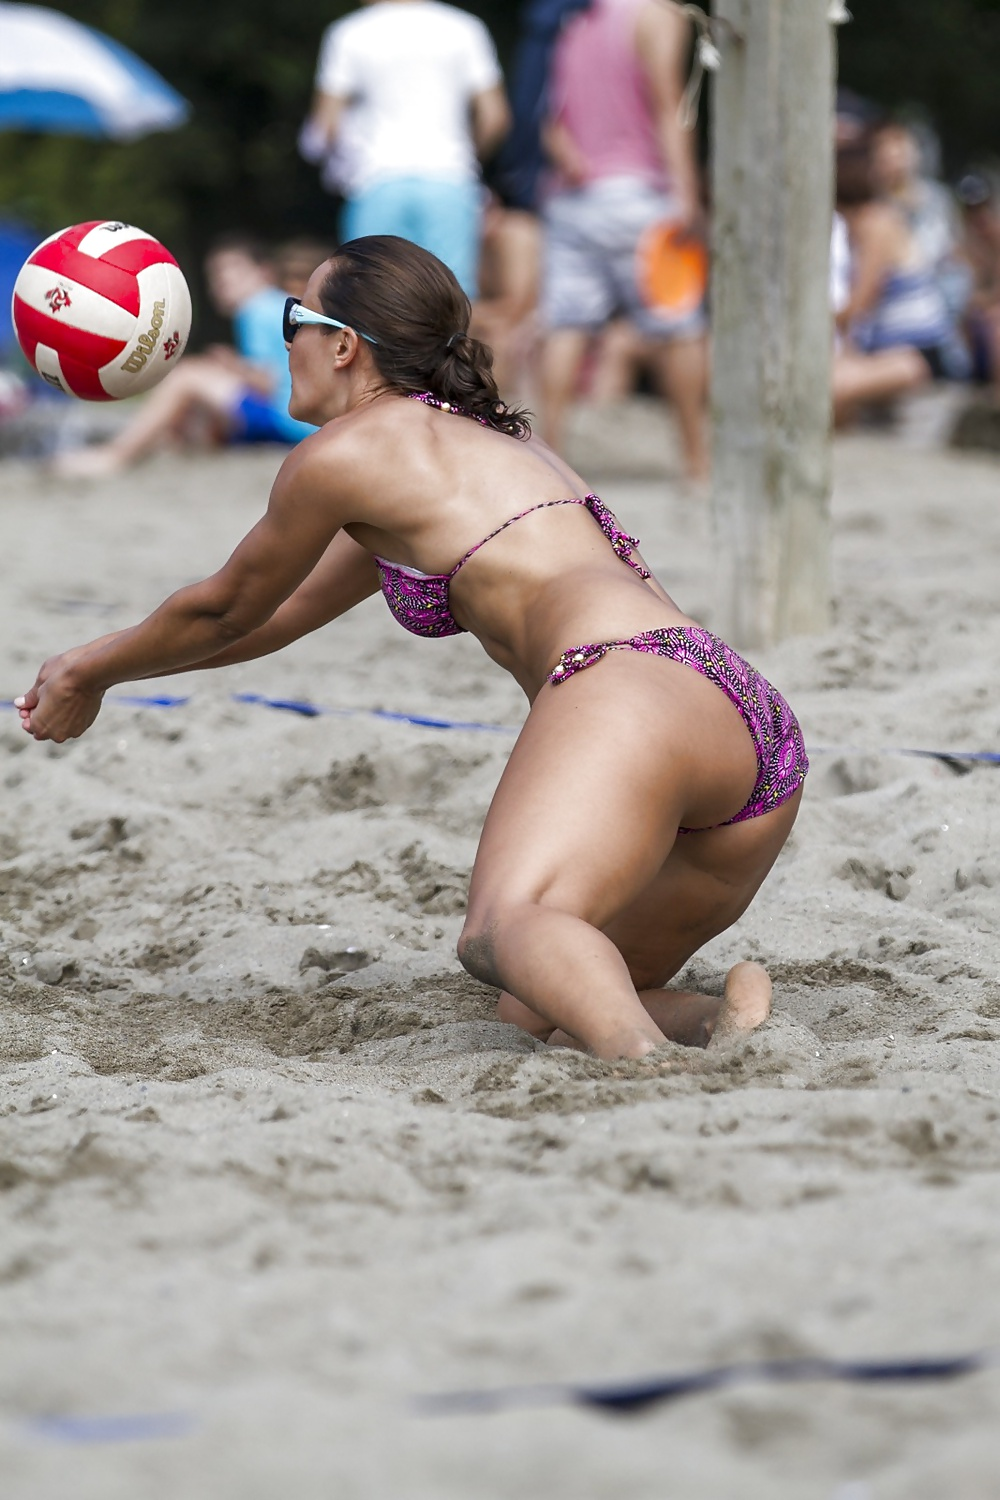 Sexy beach volleyball women